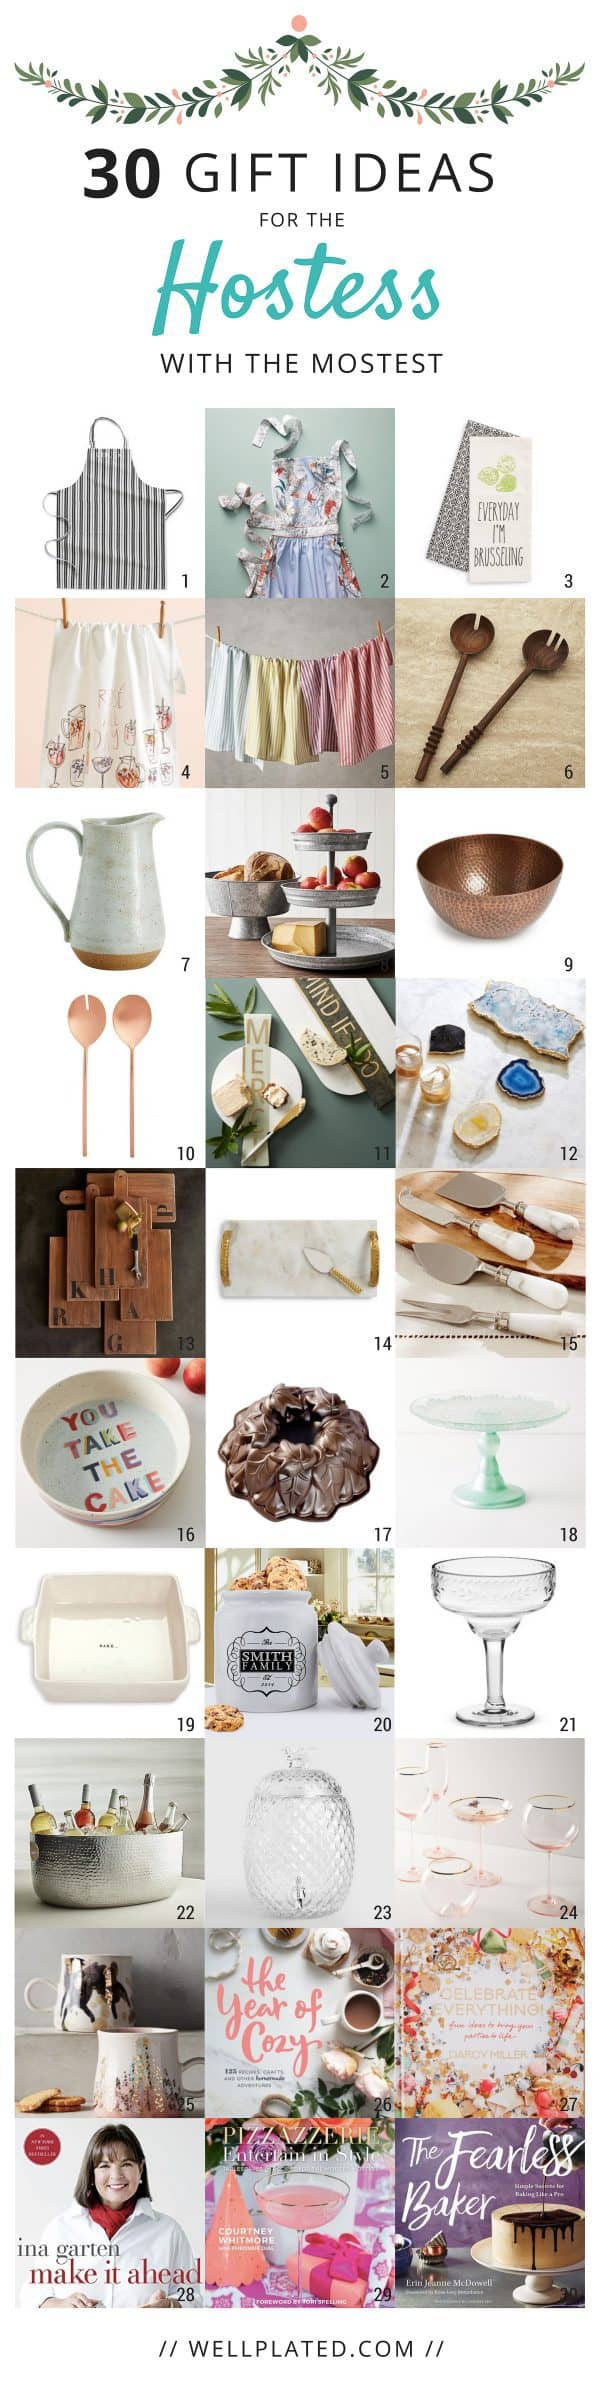 30 Hostess Gift Ideas for any budget! Easy, inexpensive gifts for the holidays and Christmas! #giftguide #hostessgift #christmas #holiday